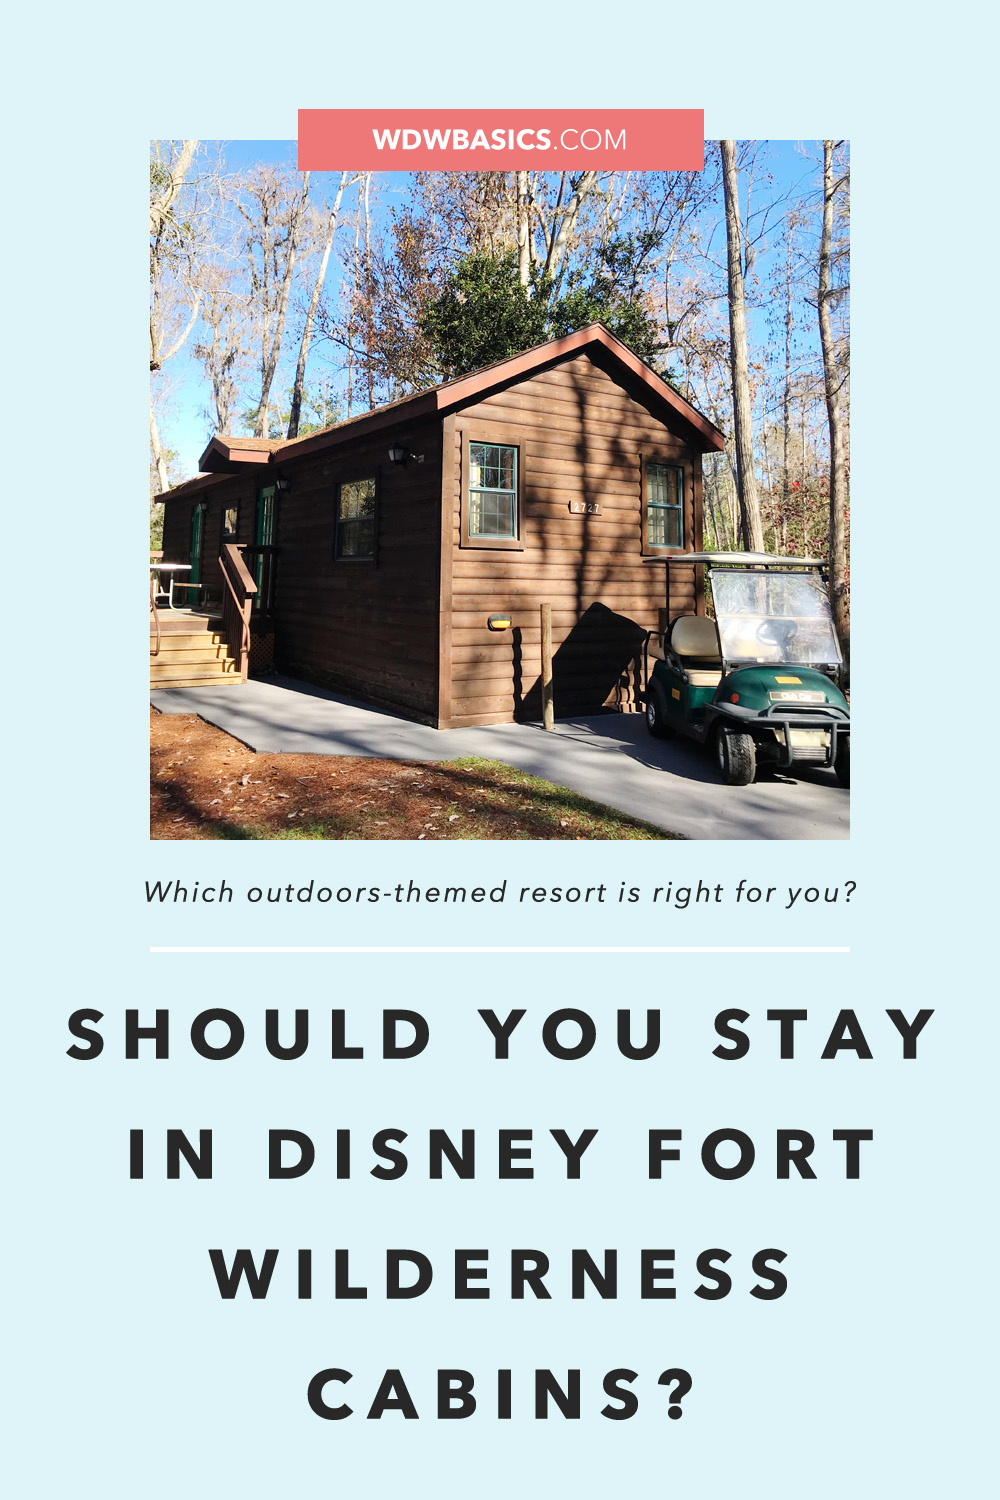 Fort Wilderness cabins or Wilderness Lodge?